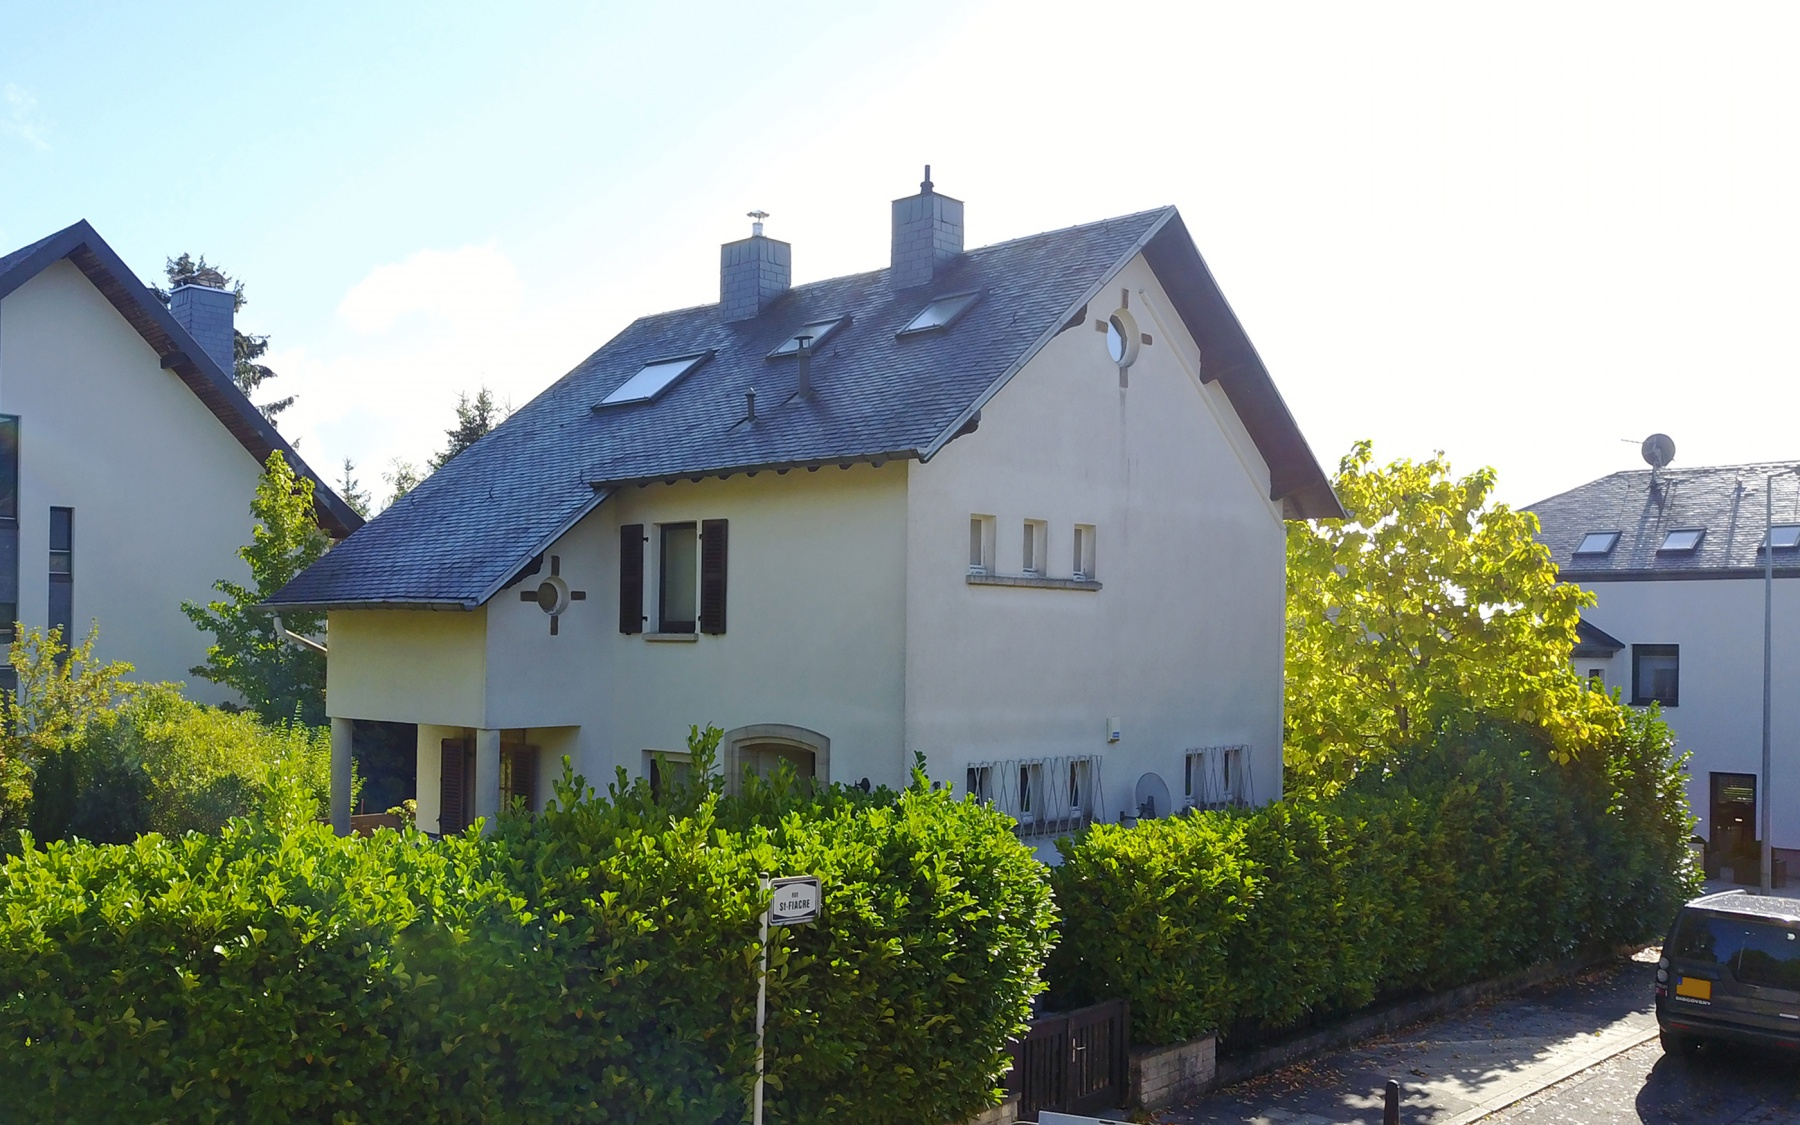 House / Land in Luxembourg-Kirchberg